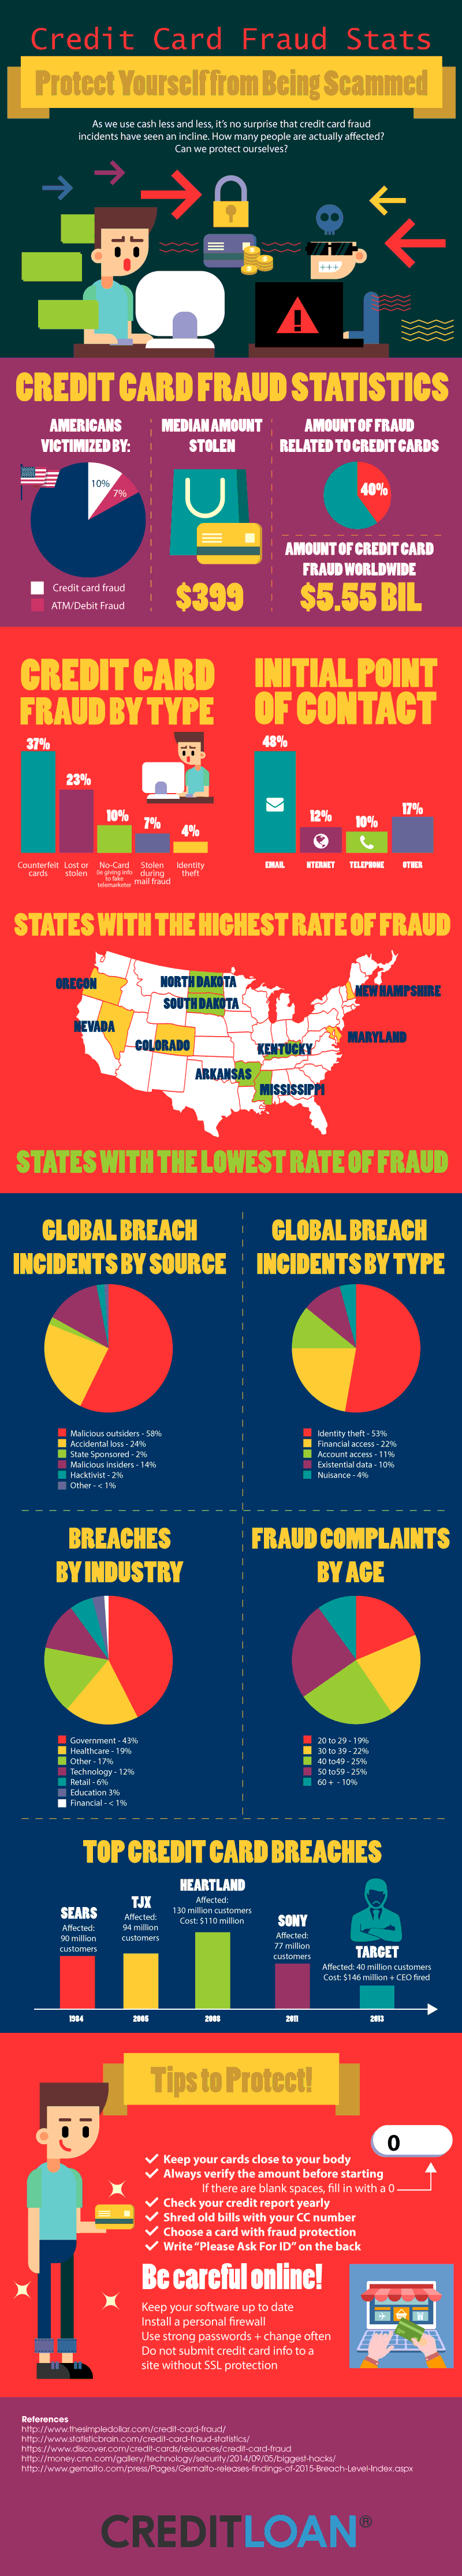 Credit-Card-Fraud-Stats---Protect-Yourself-from-Being-Scammed